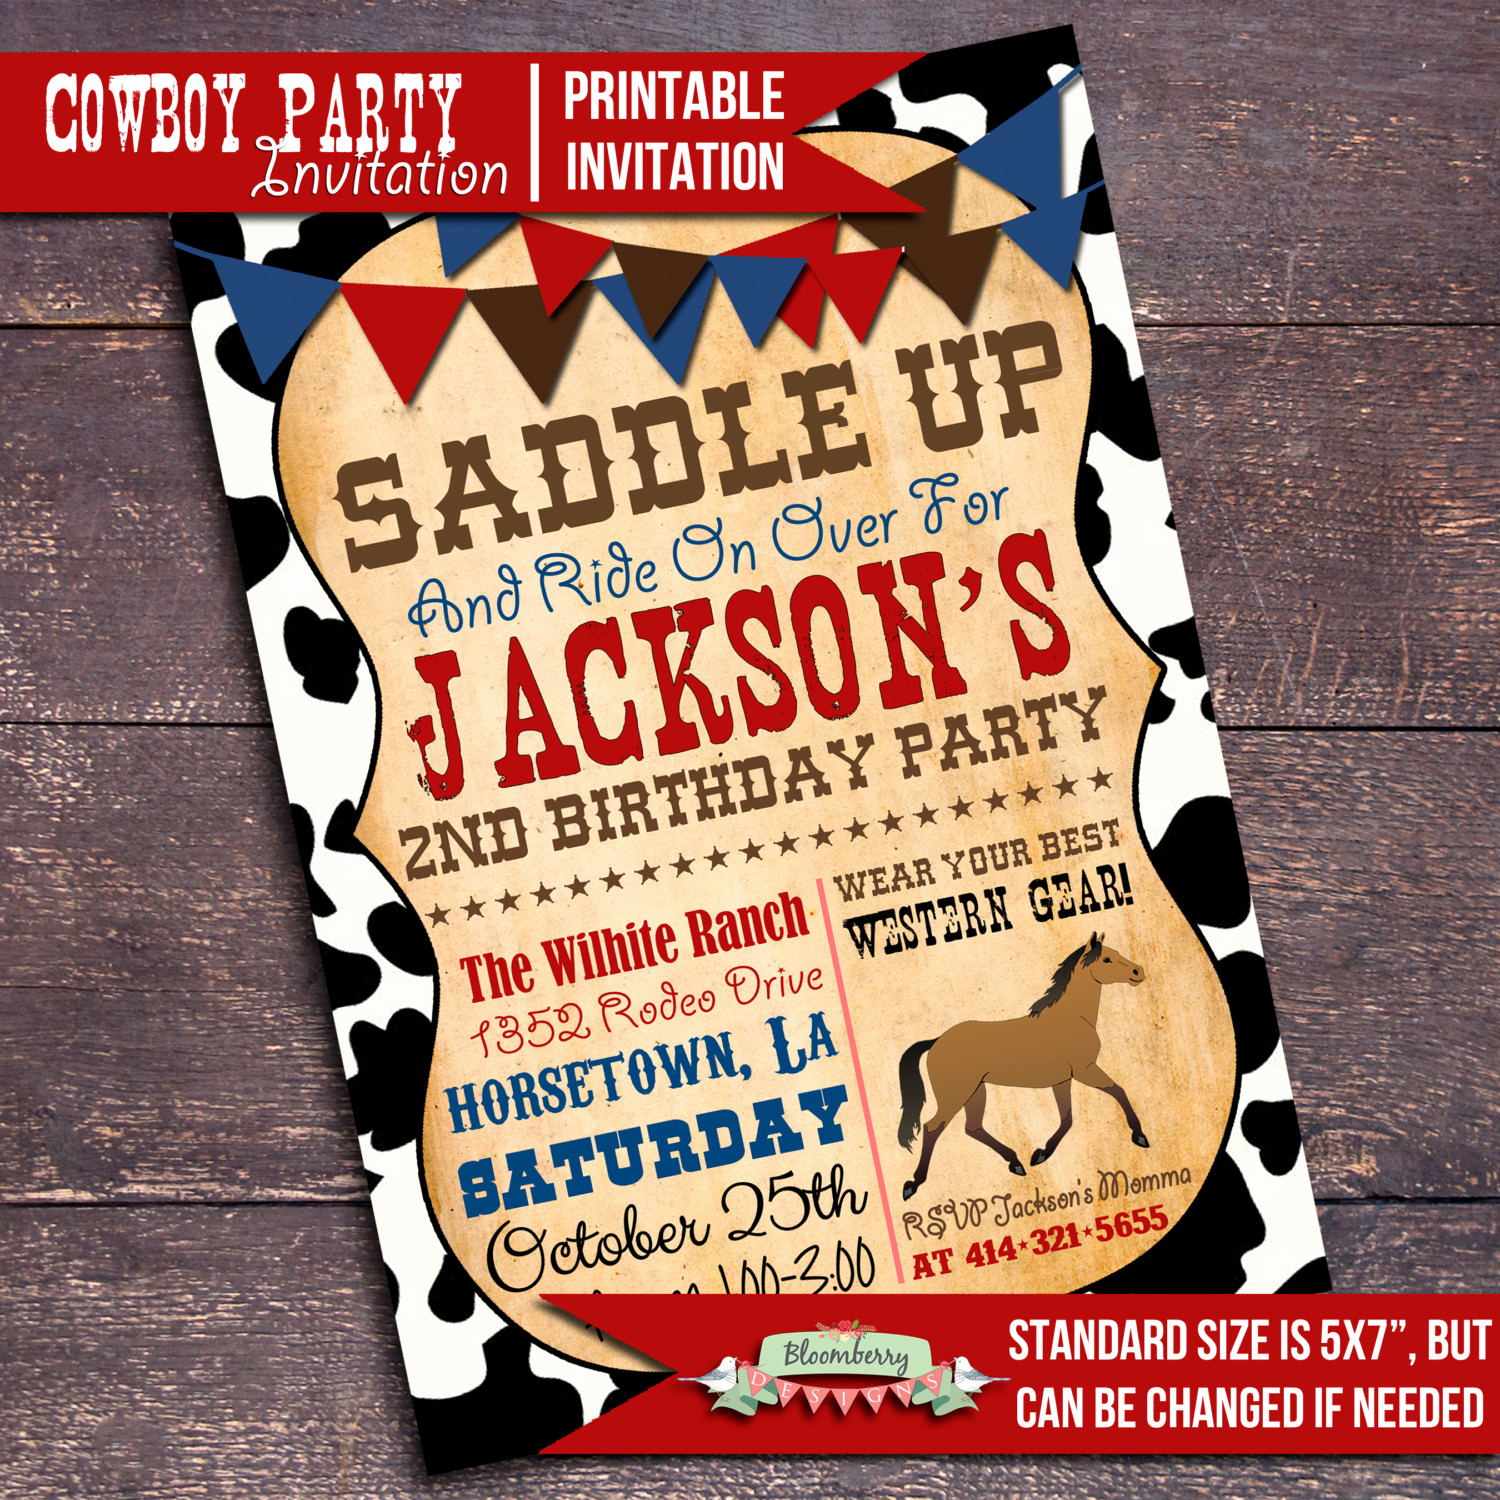 Western theme Party Invitation Template Beautiful Printable Cowboy Party Invitation Western by Bloomberrydesigns